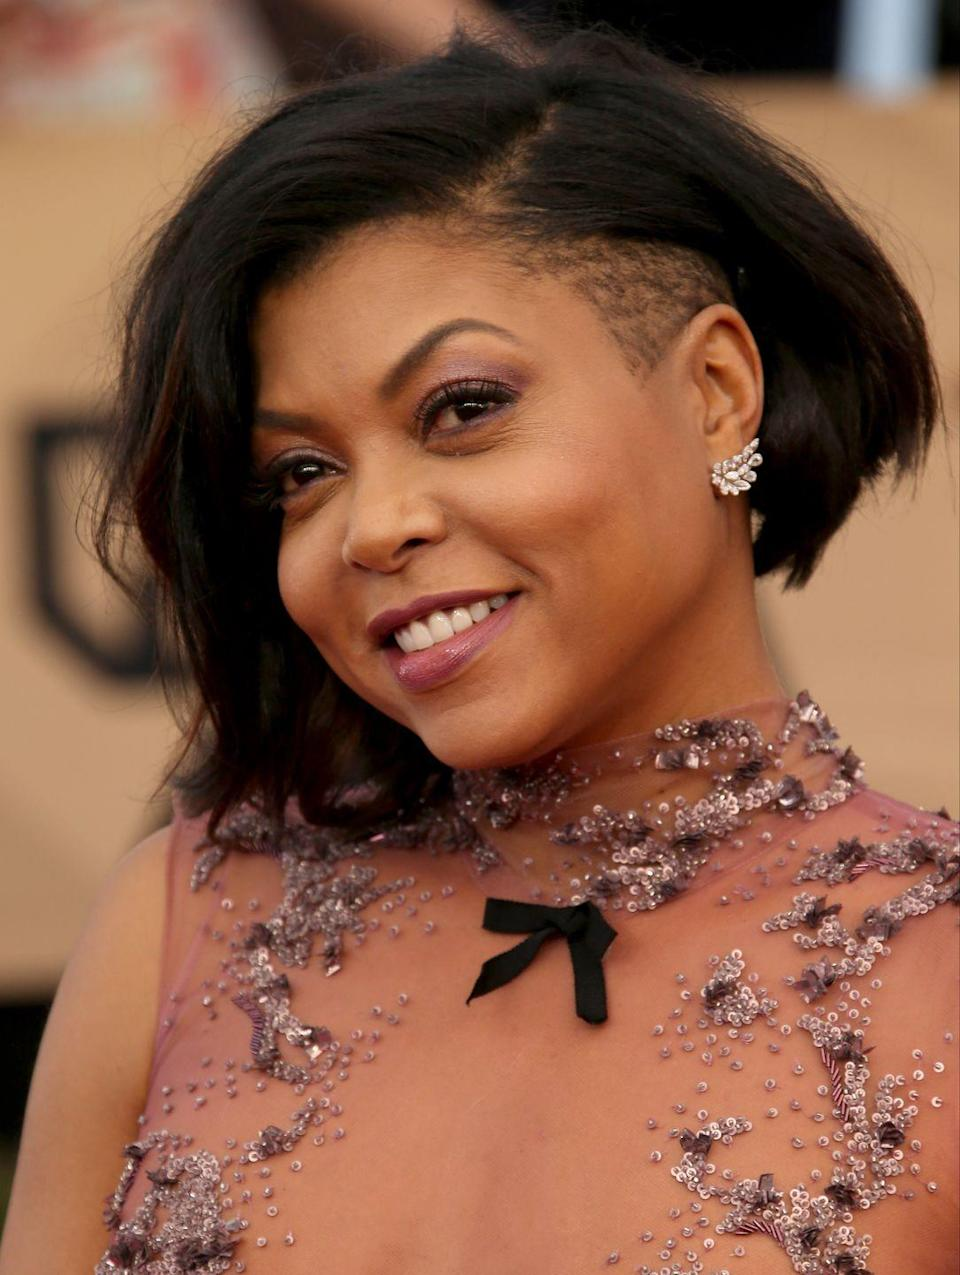 <p>No stranger to the basic bob? Upgrade it instantly with an edgy undercut you can hide or show off, depending on your mood. Taraji P. Henson looks glamorous and cool.</p>